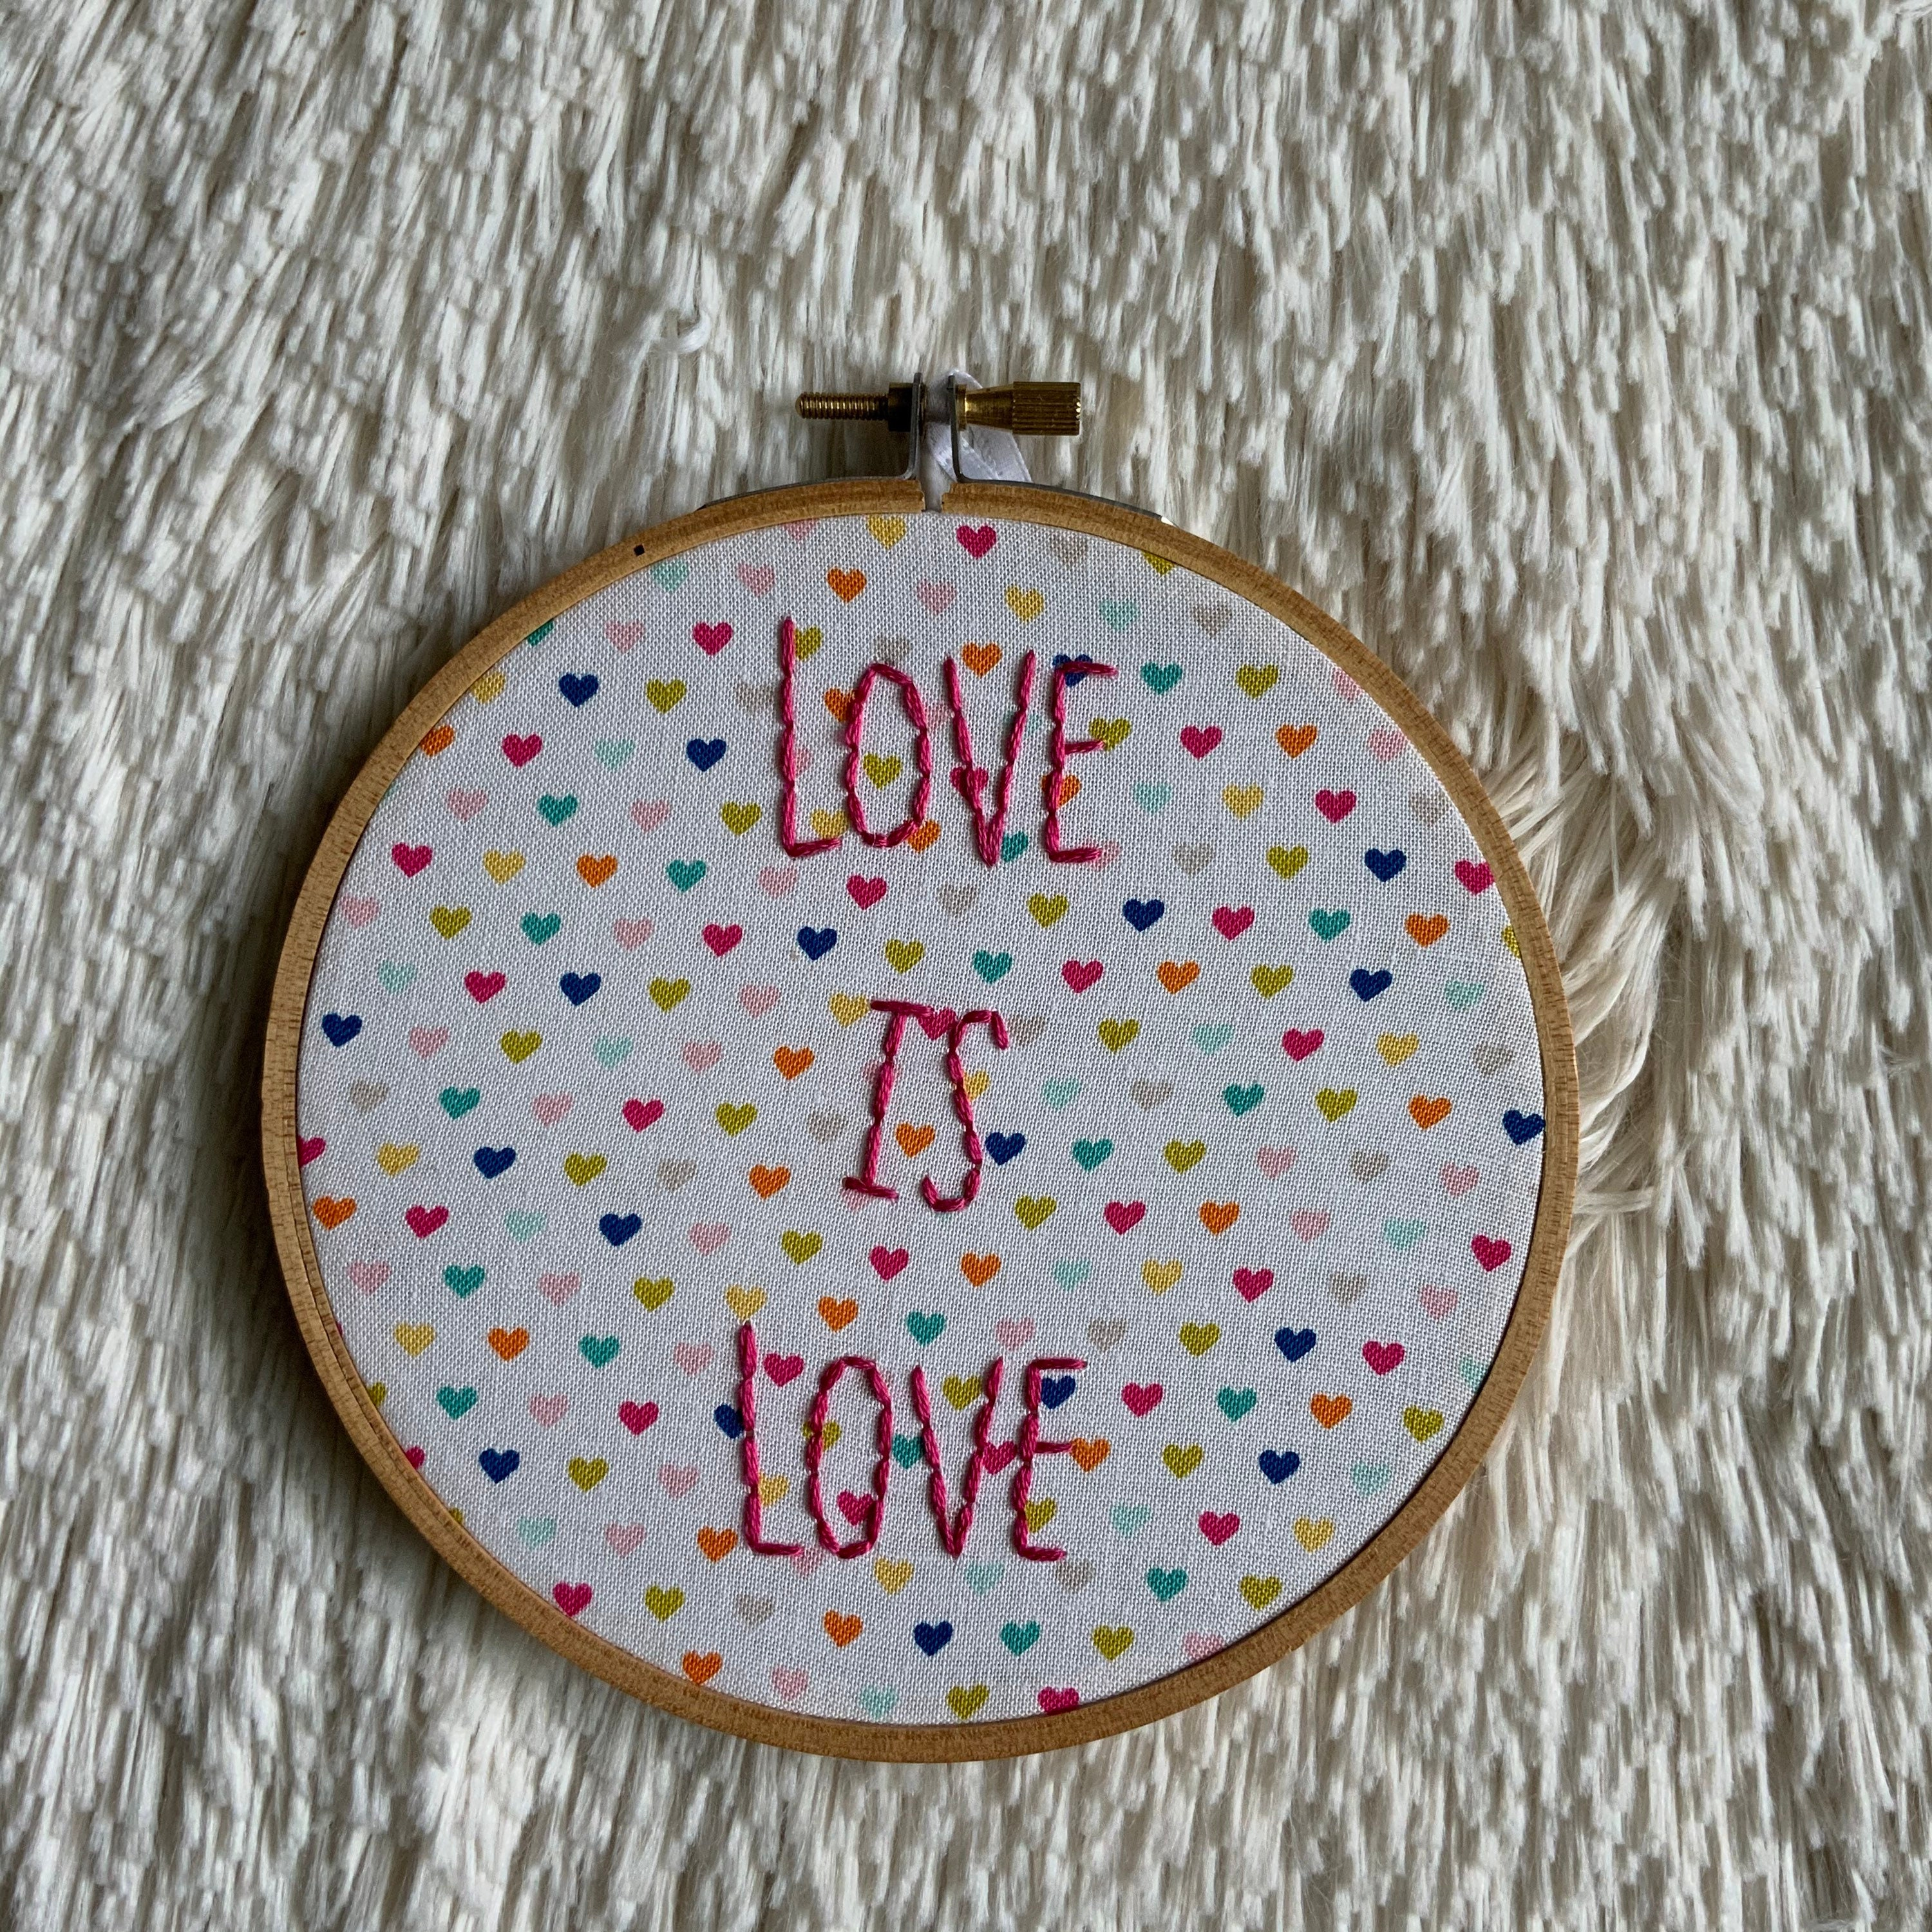 Transgender Rights Symbol Embroidery Hoop Art Modern Embroidery Hand Embroidery